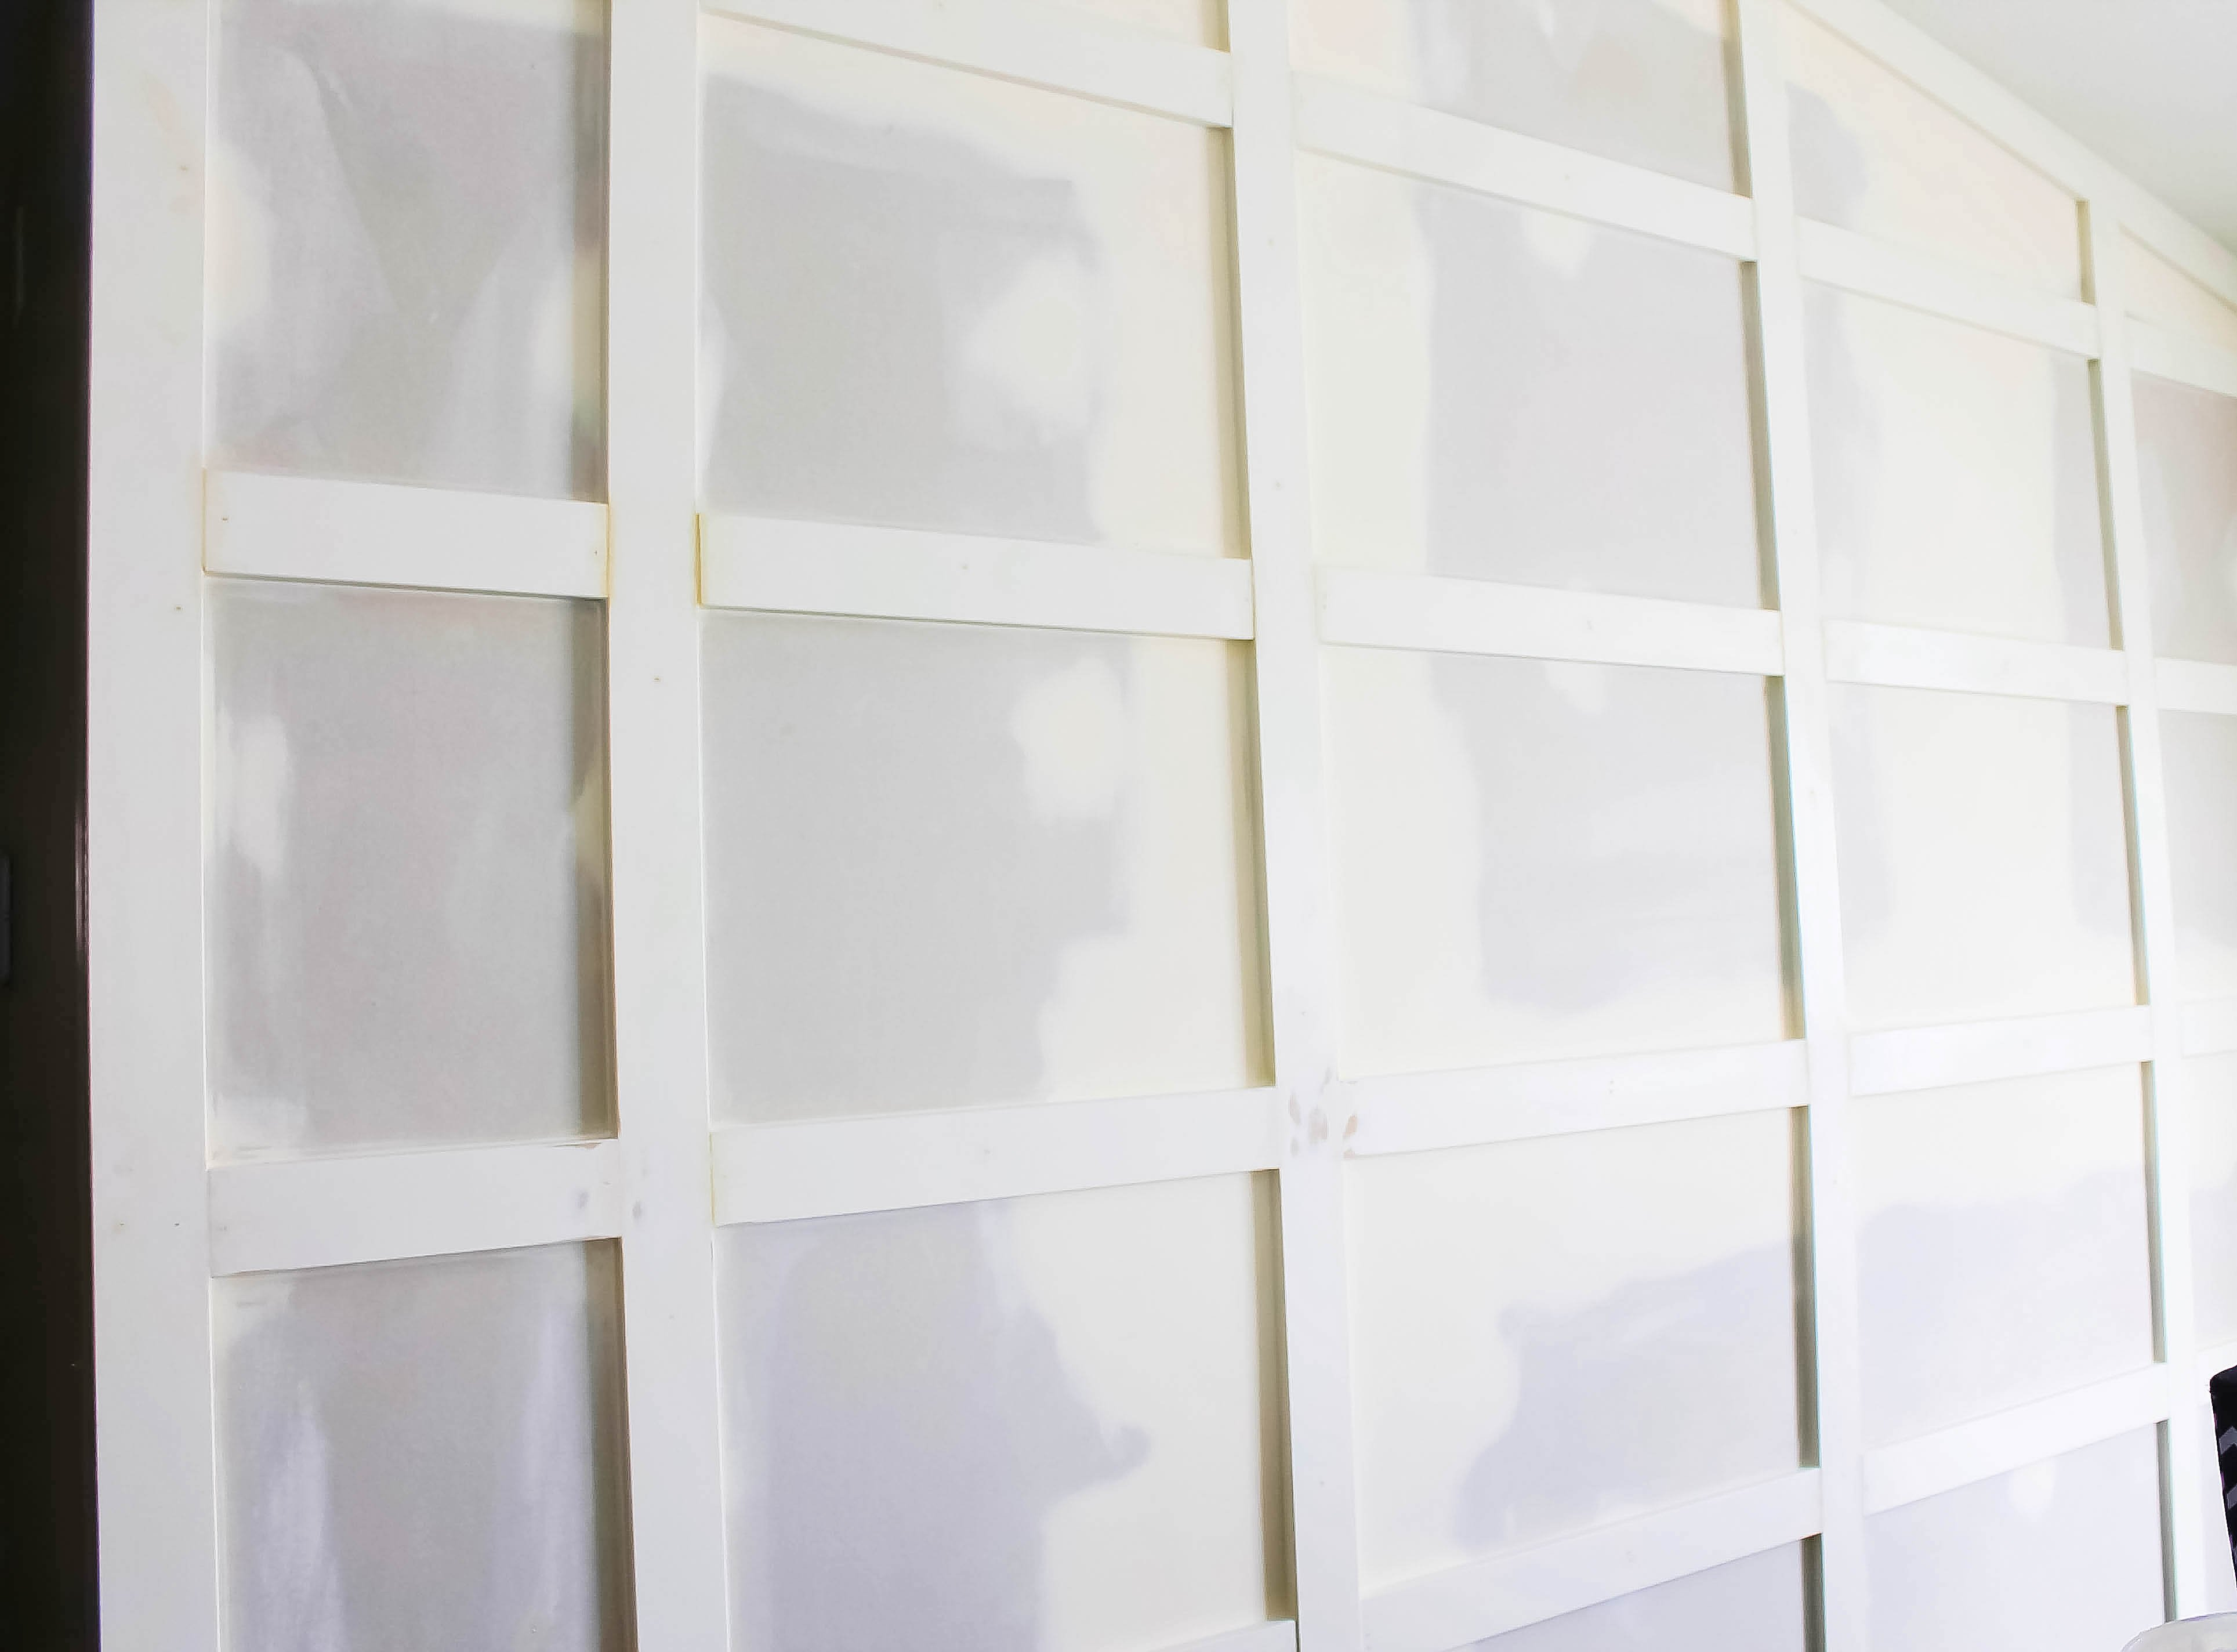 DIY - How to do a Board and Batten Wainscoting Wall